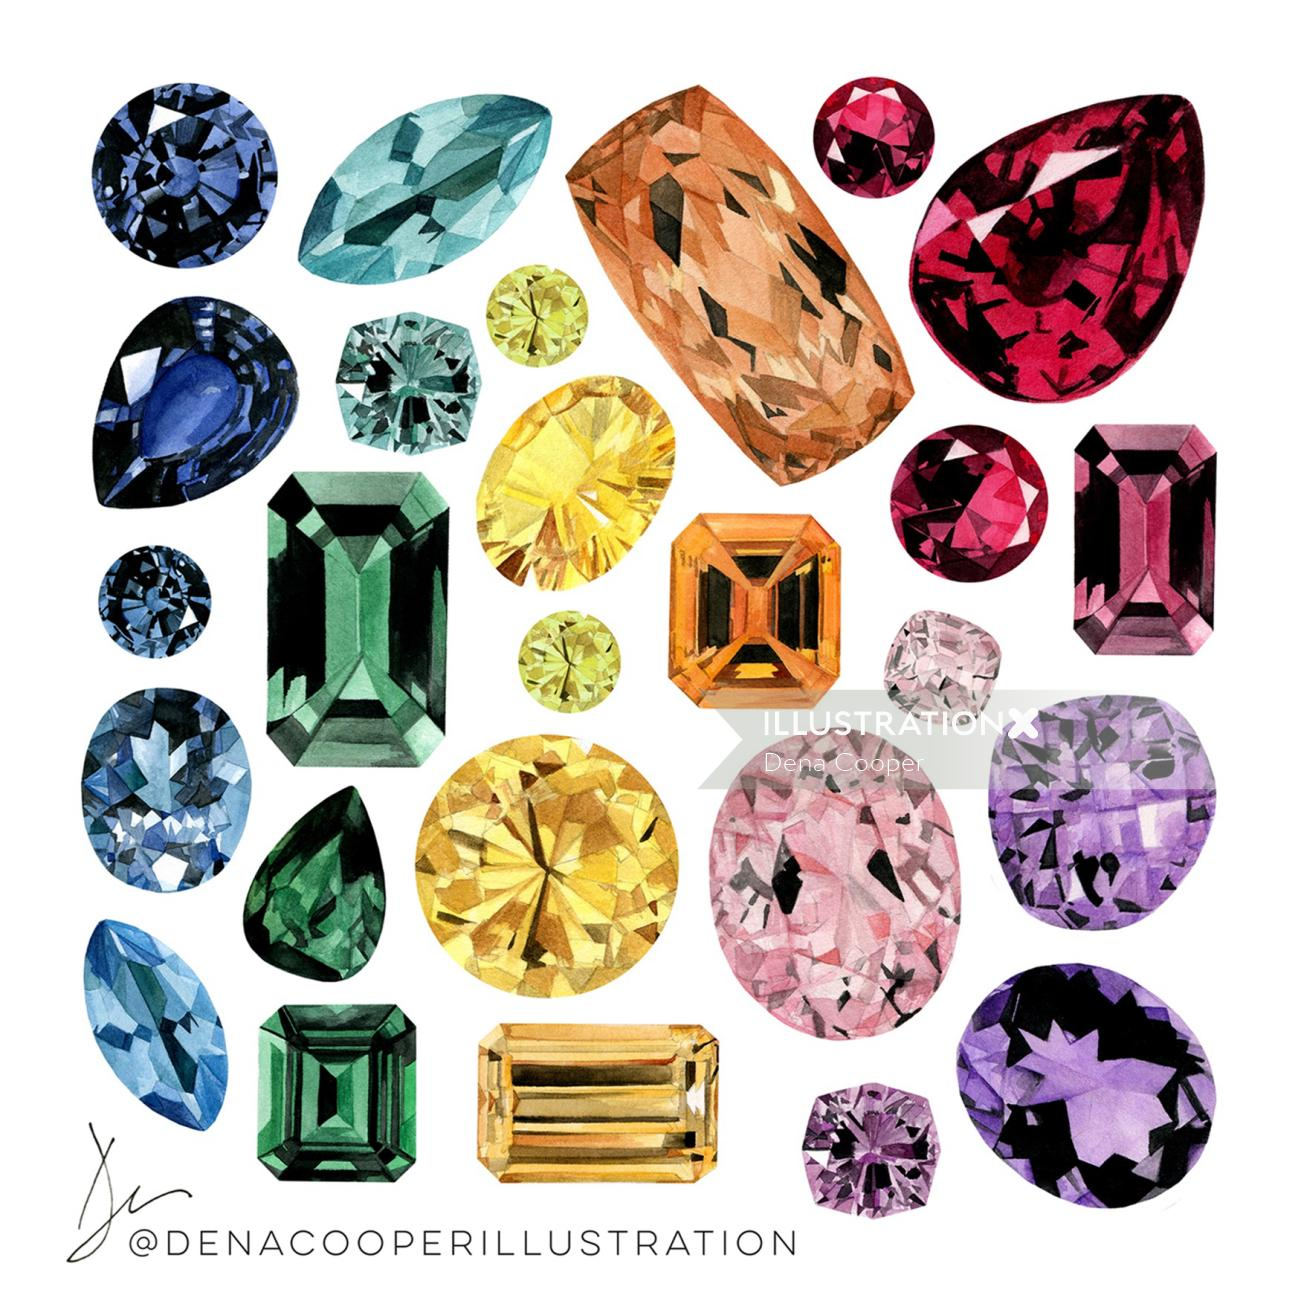 Illustration of coloured Gemstones by Dena Cooper